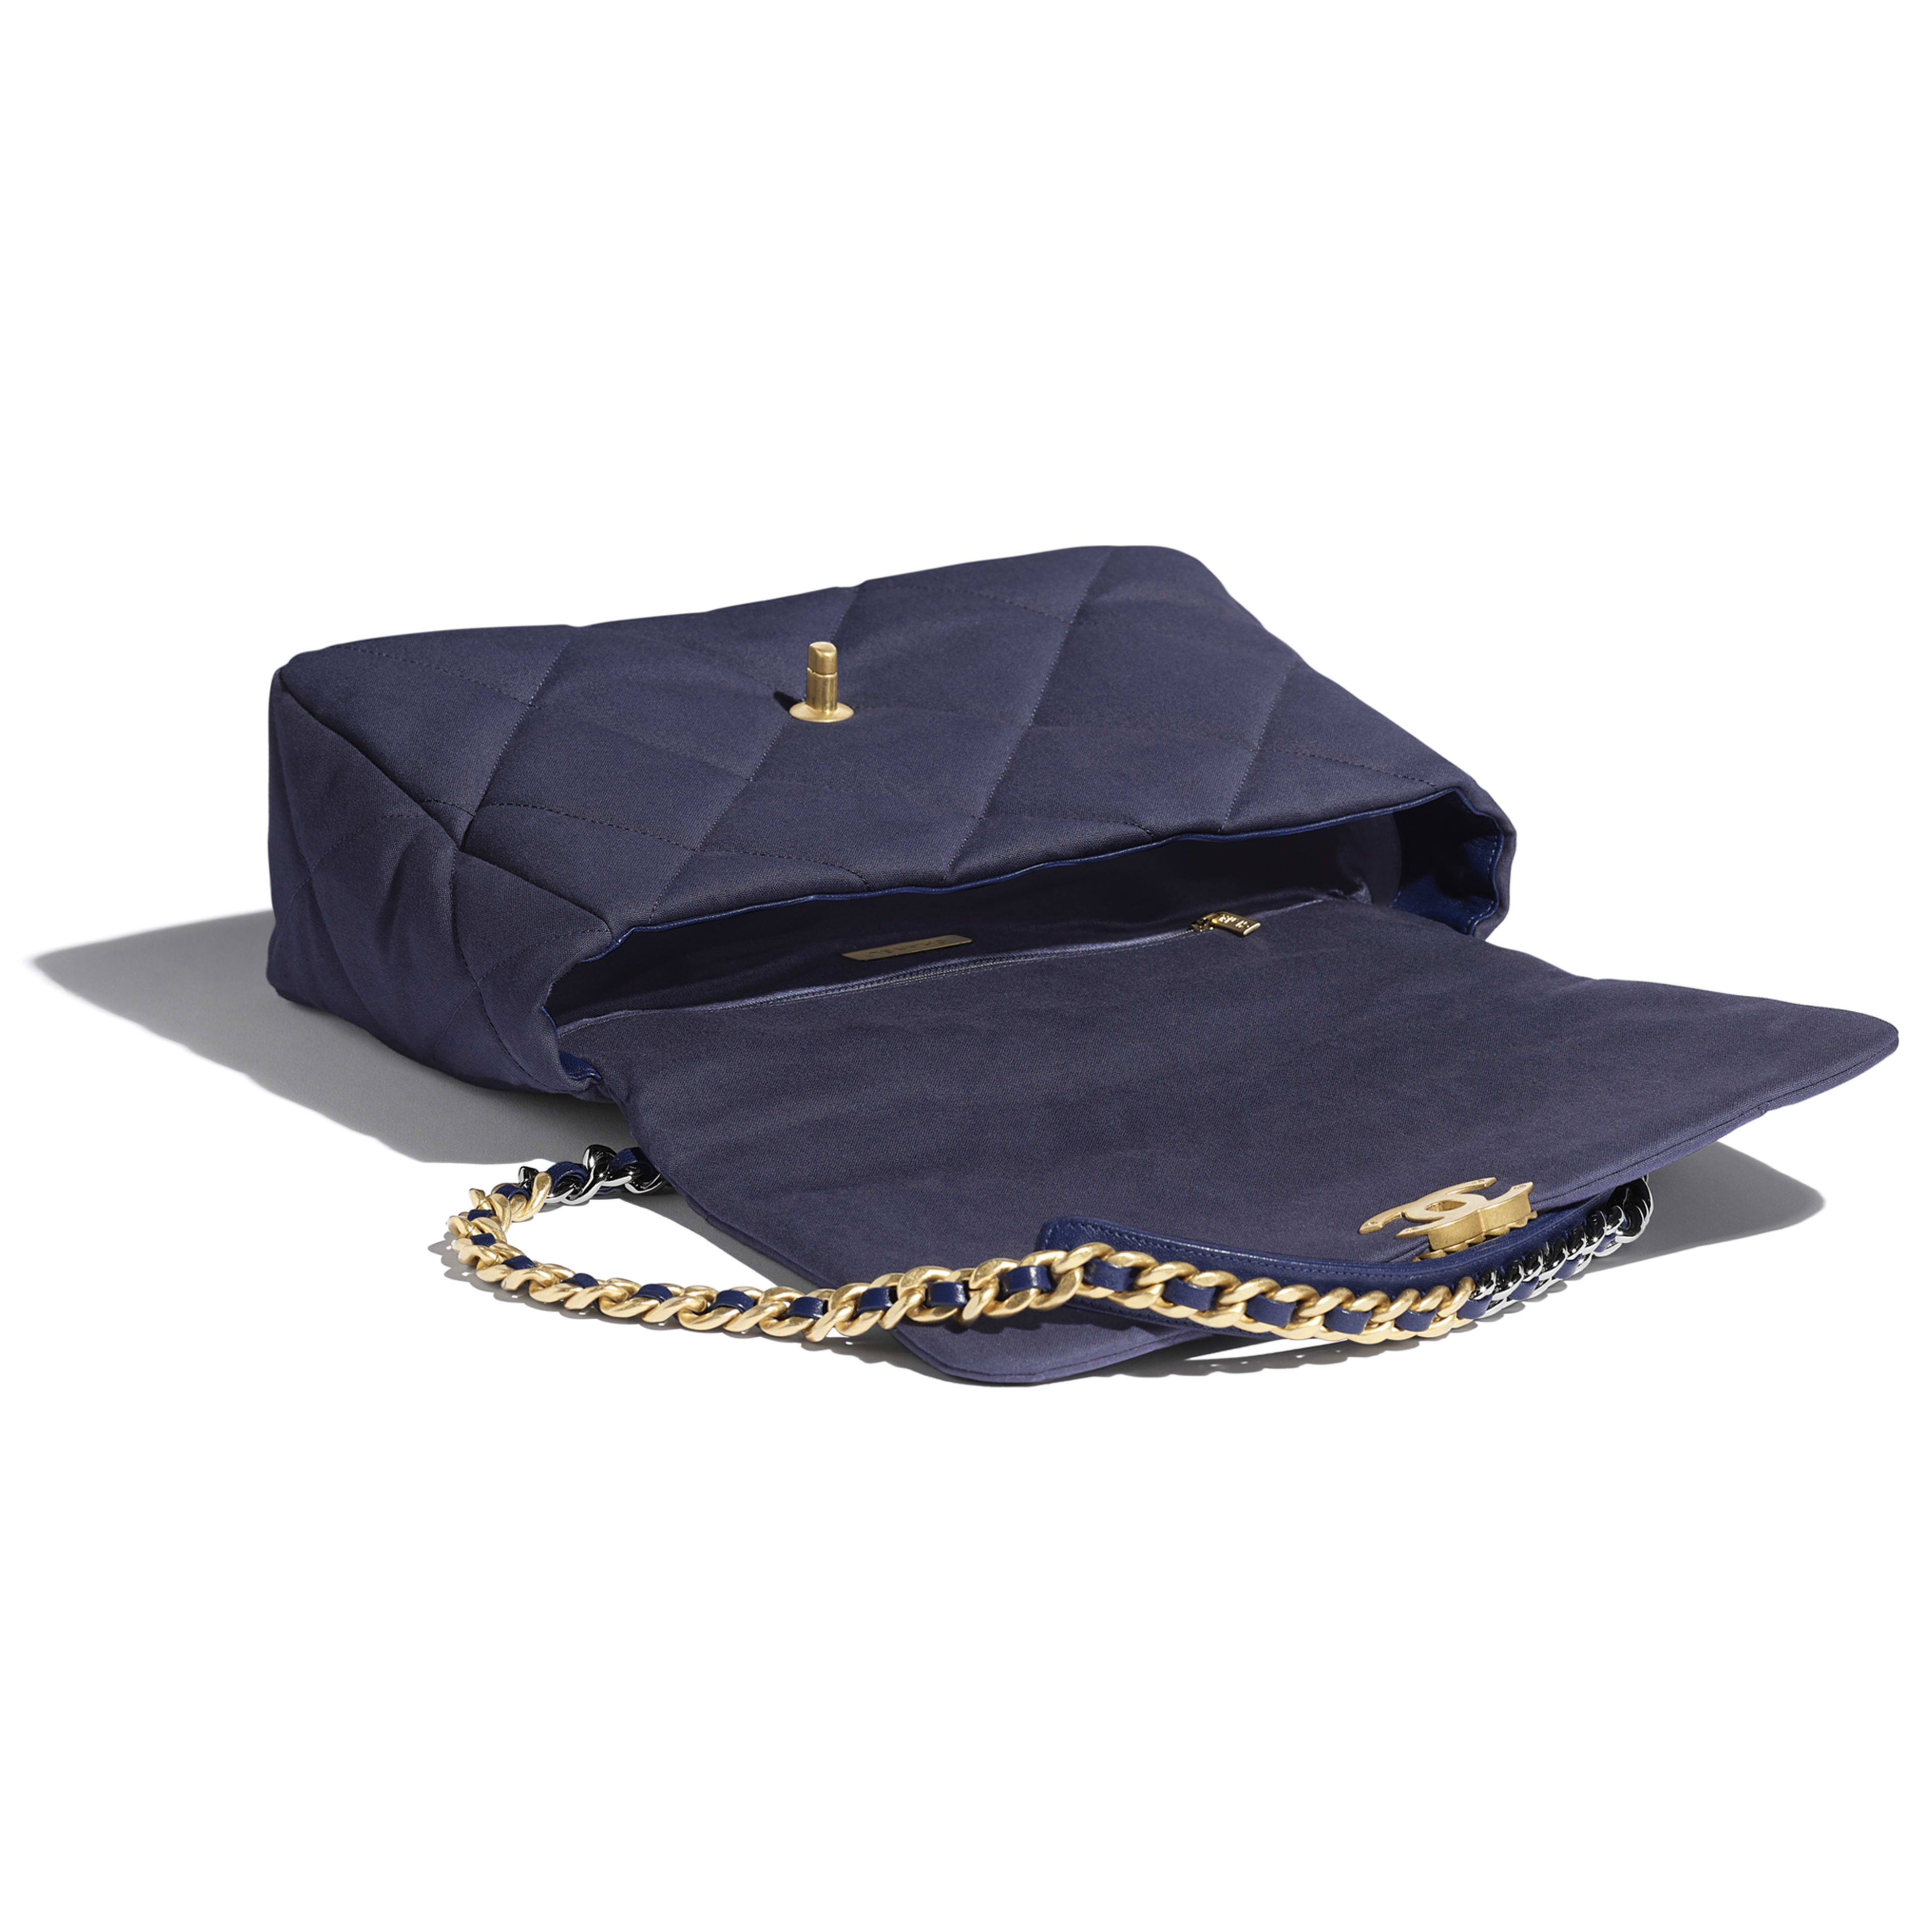 CHANEL 19 Maxi Flap Bag - Navy Blue - Cotton Canvas, Calfskin, Gold-Tone, Silver-Tone & Ruthenium-Finish Metal - Other view - see full sized version